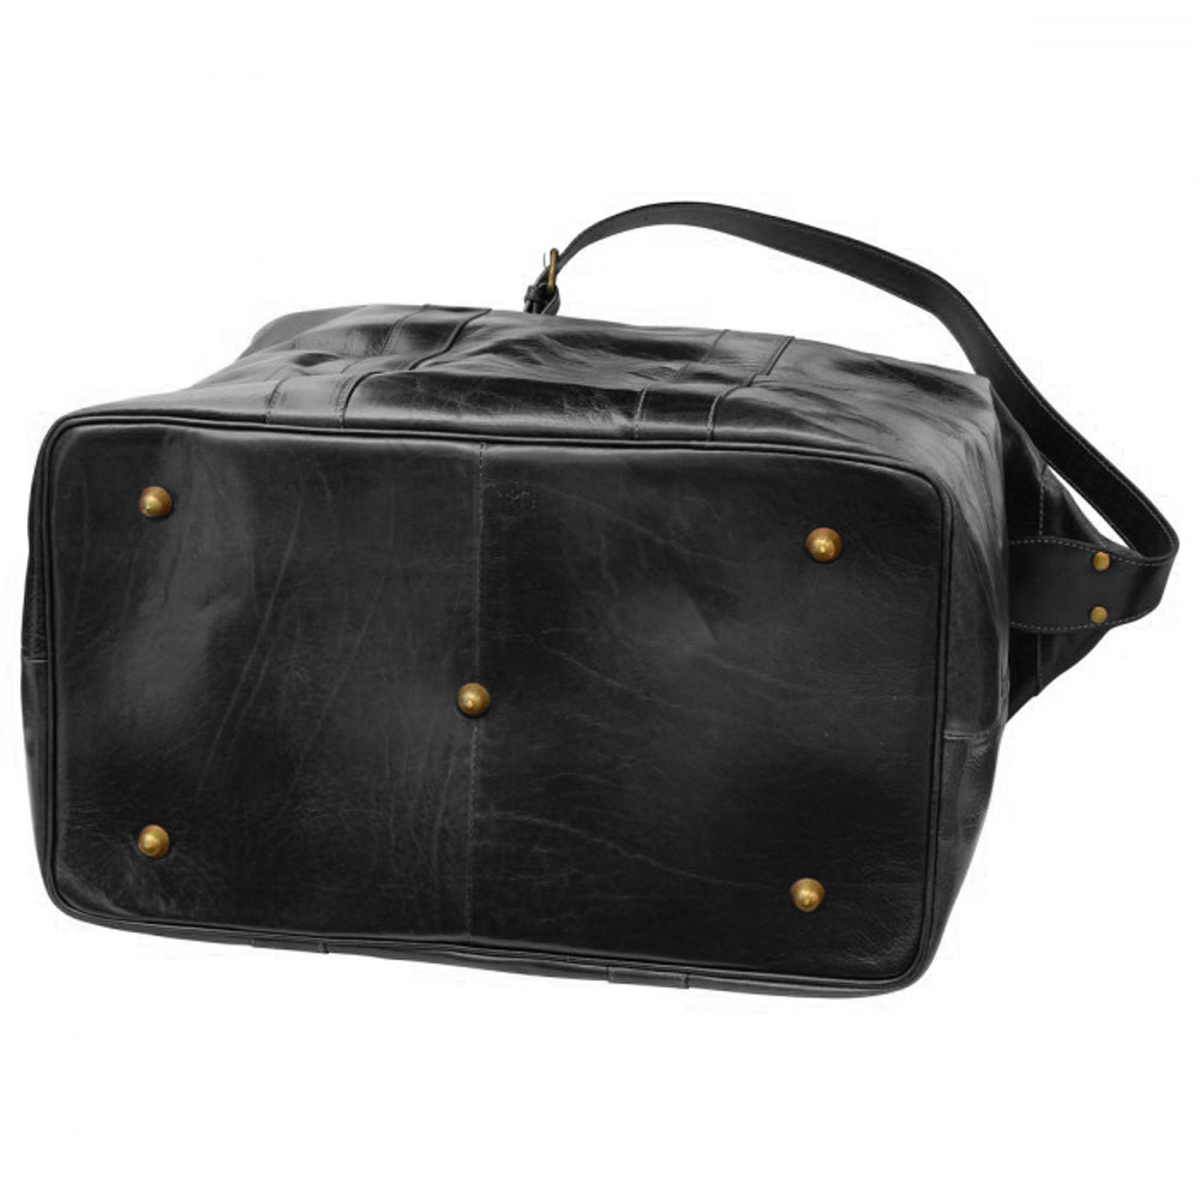 Cowhide vachetta leather travel bag - Black | 001805NE E | Old Angler Firenze